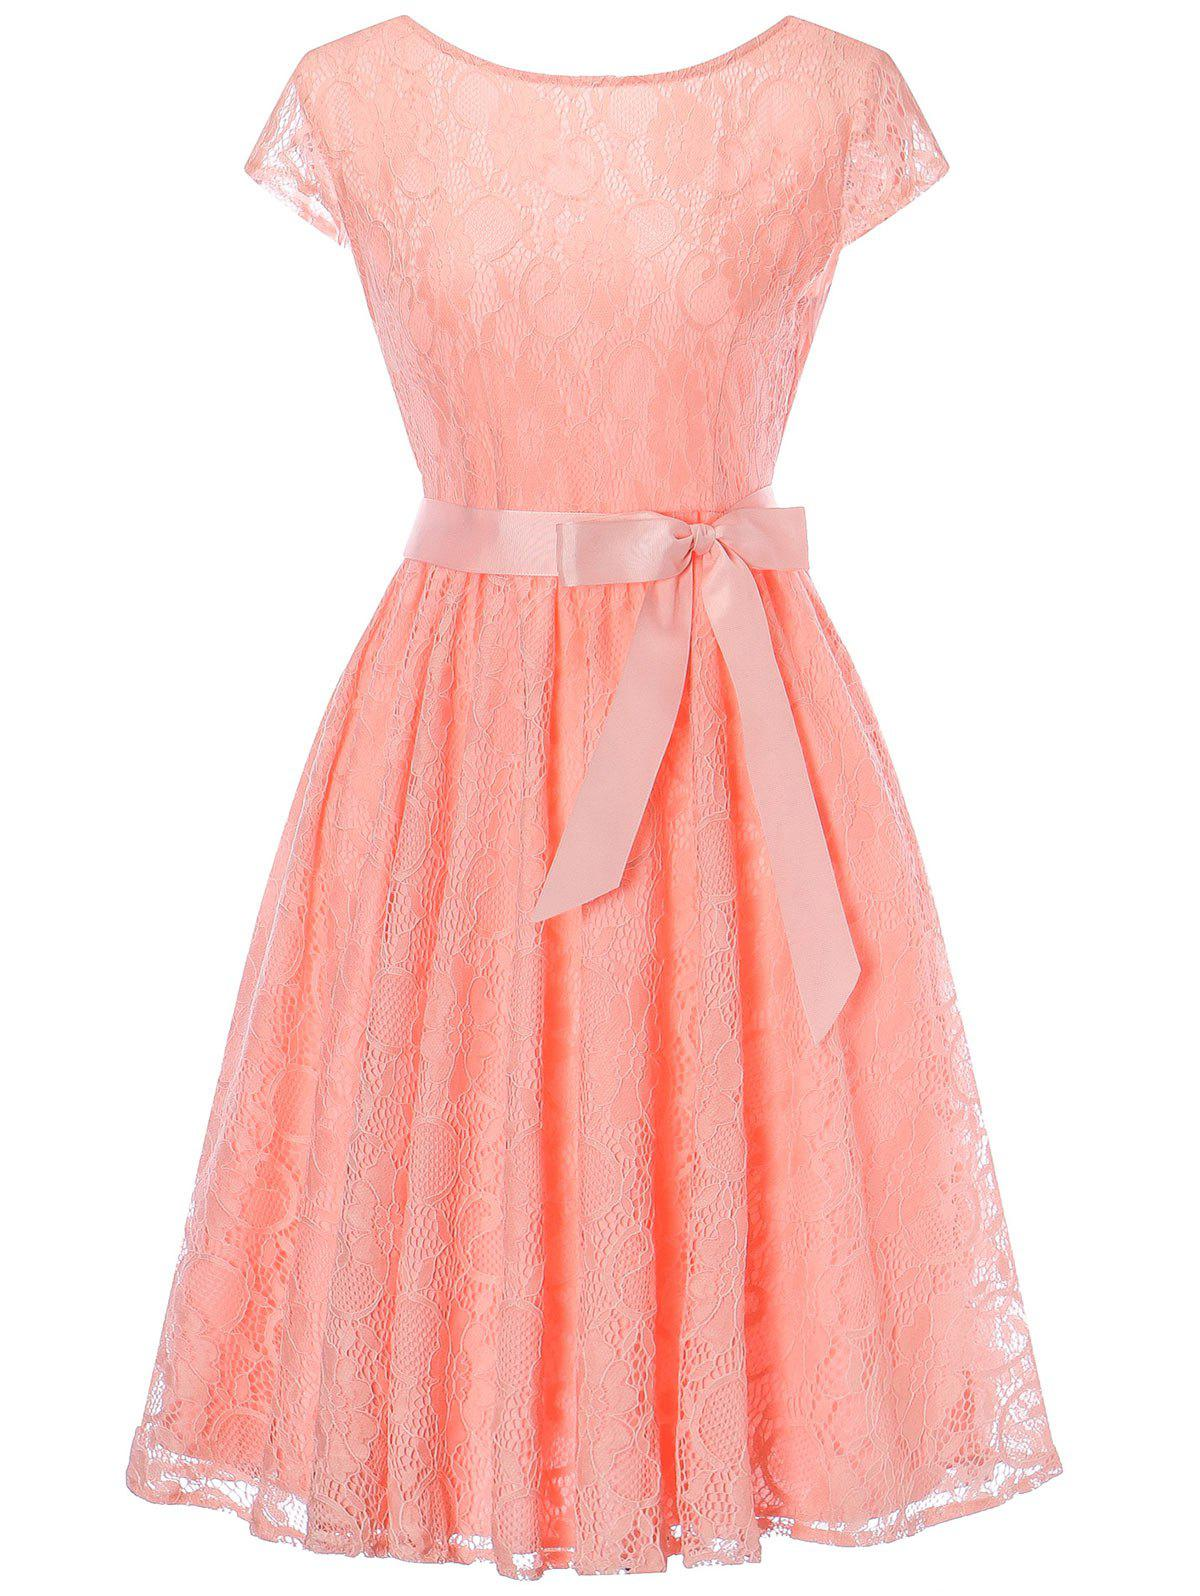 Cap Sleeve Lace Swing Dress with Tie Bowknot - ORANGEPINK M